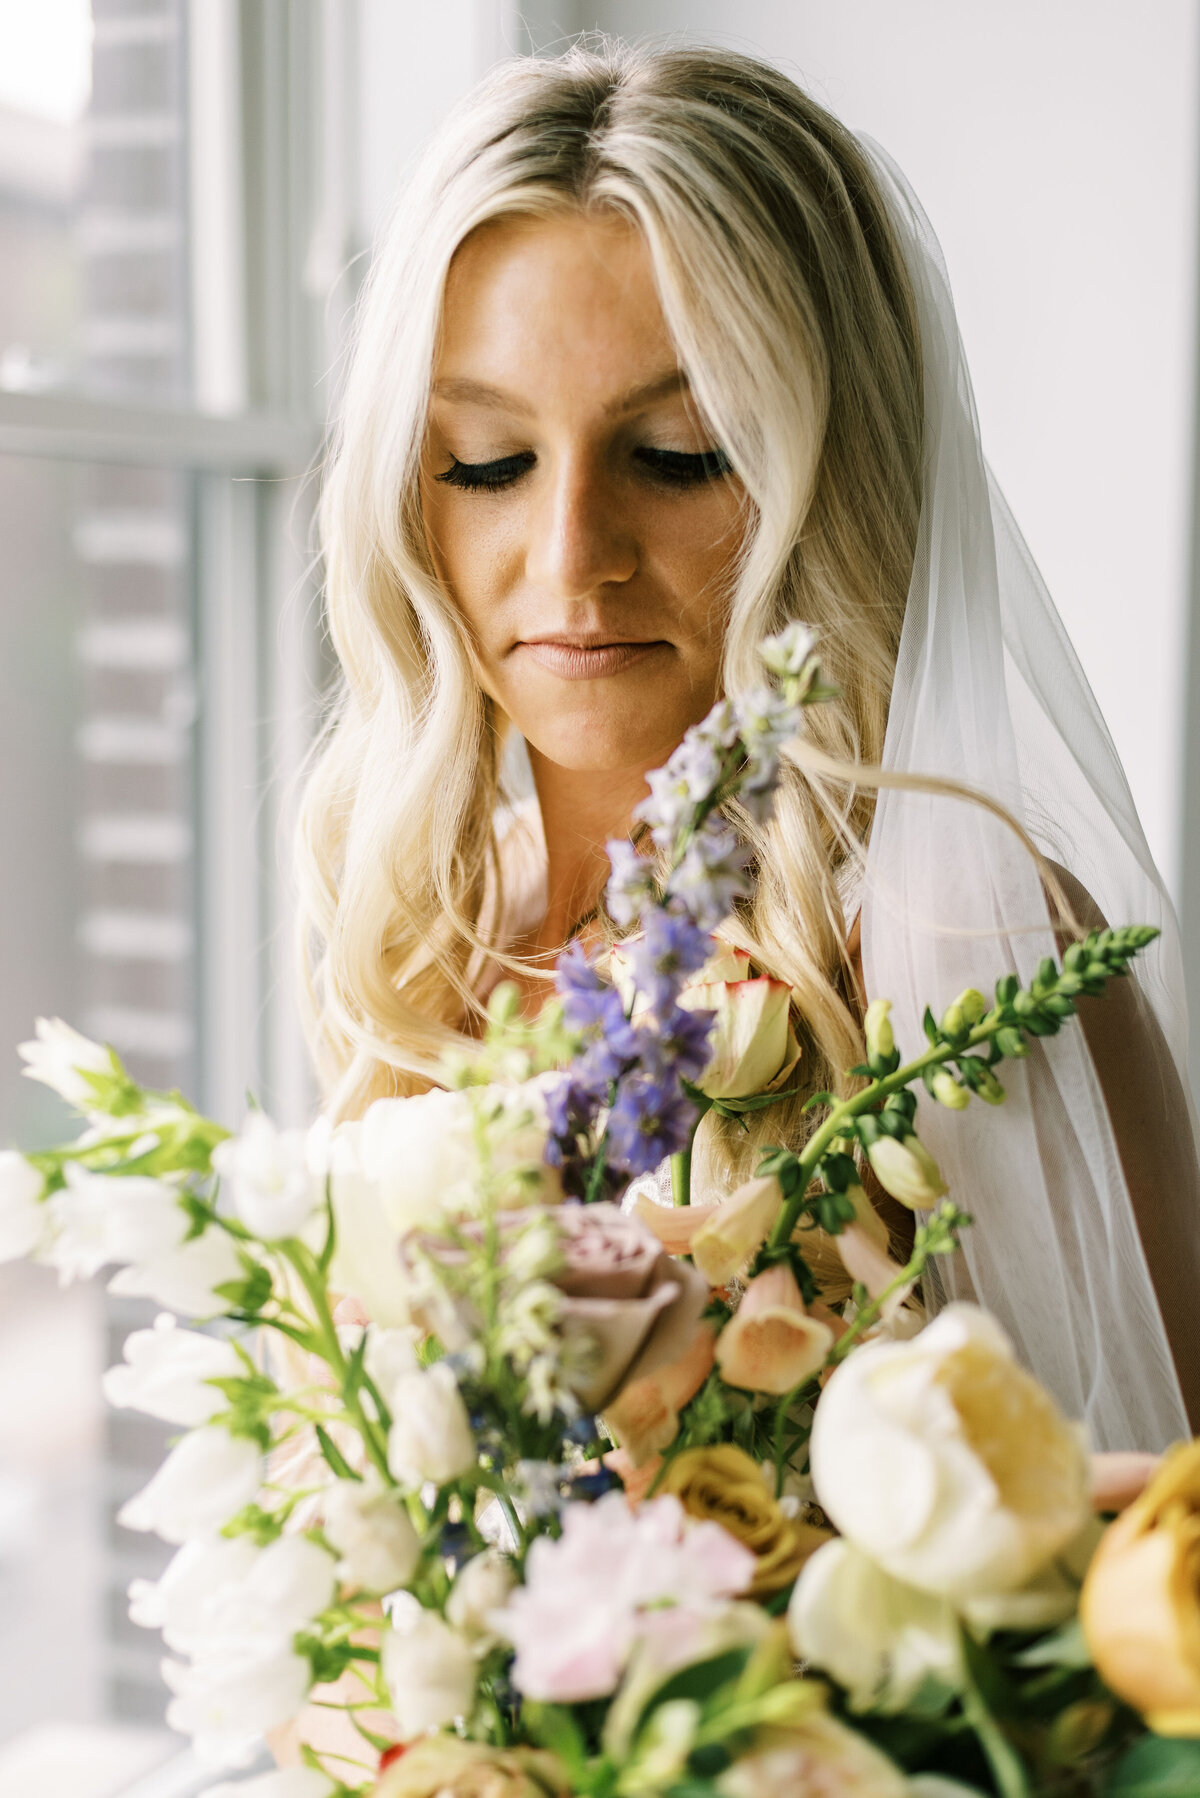 The Day's Design Northern Michigan Florist Lavender Wedding